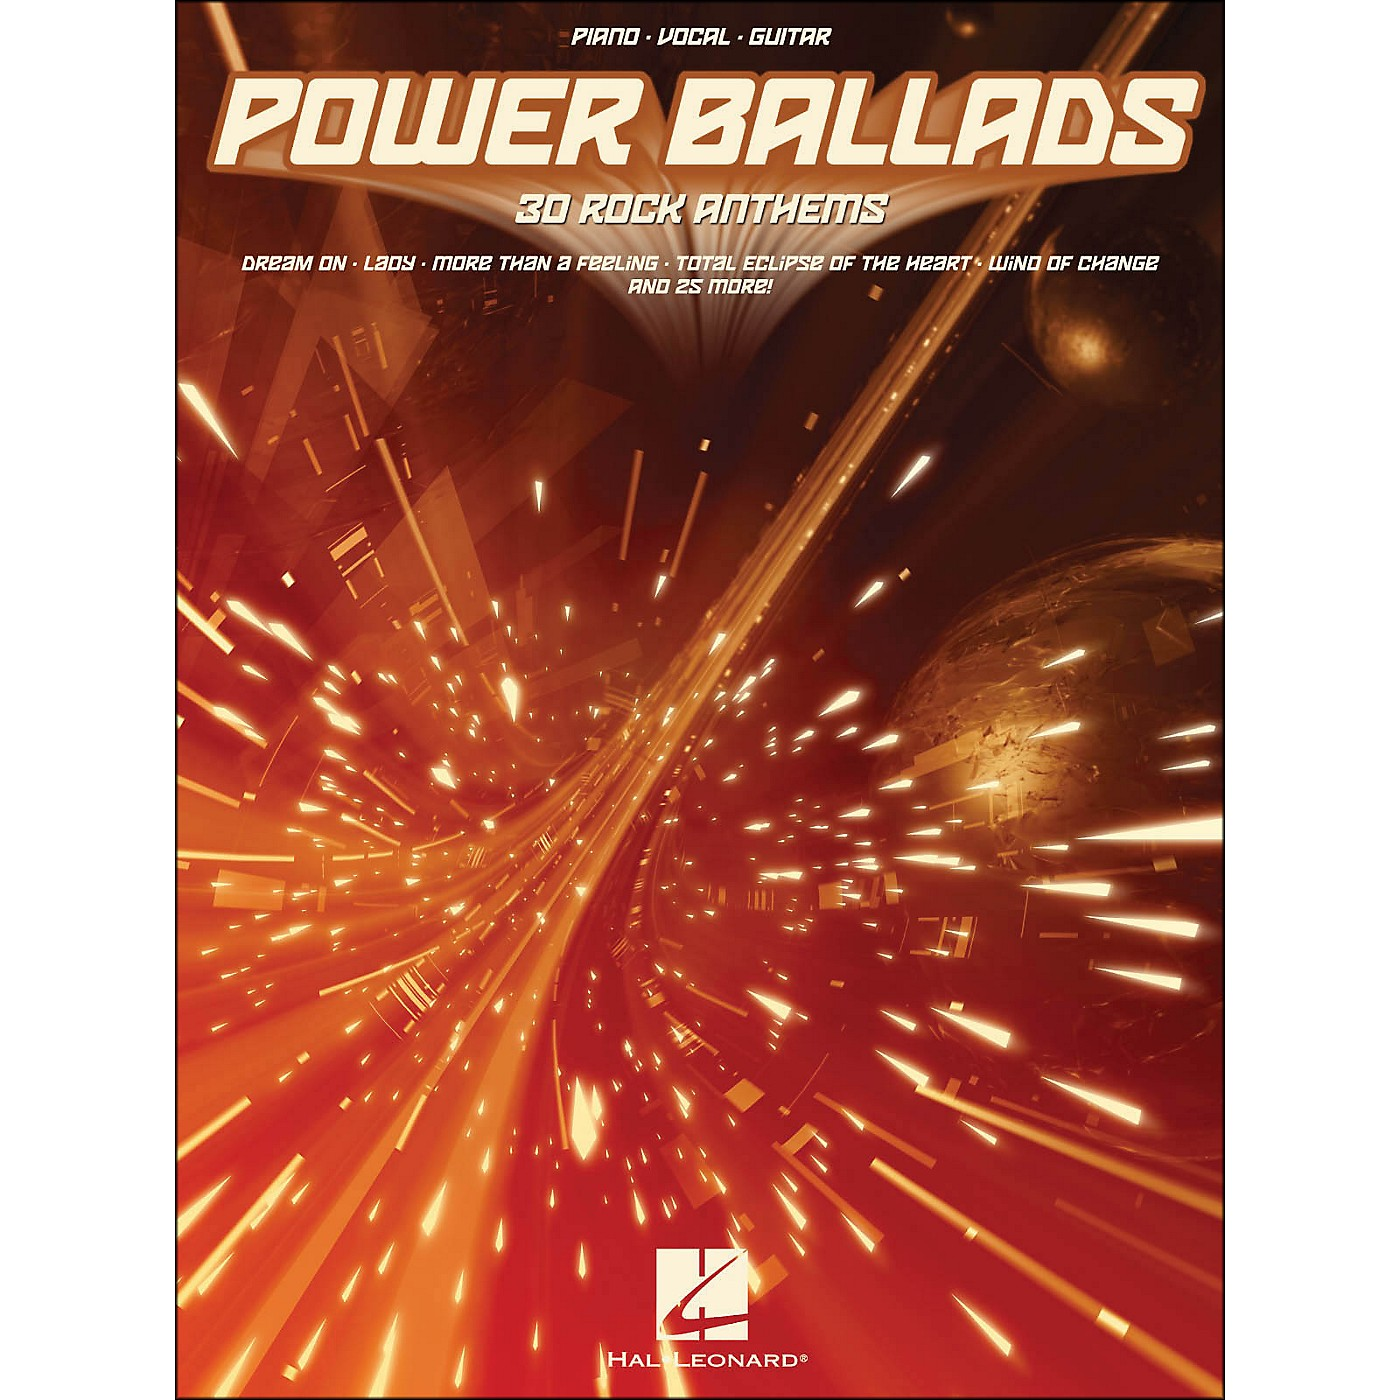 Hal Leonard Power Ballads 30 Rock Anthems arranged for piano, vocal, and guitar (P/V/G) thumbnail